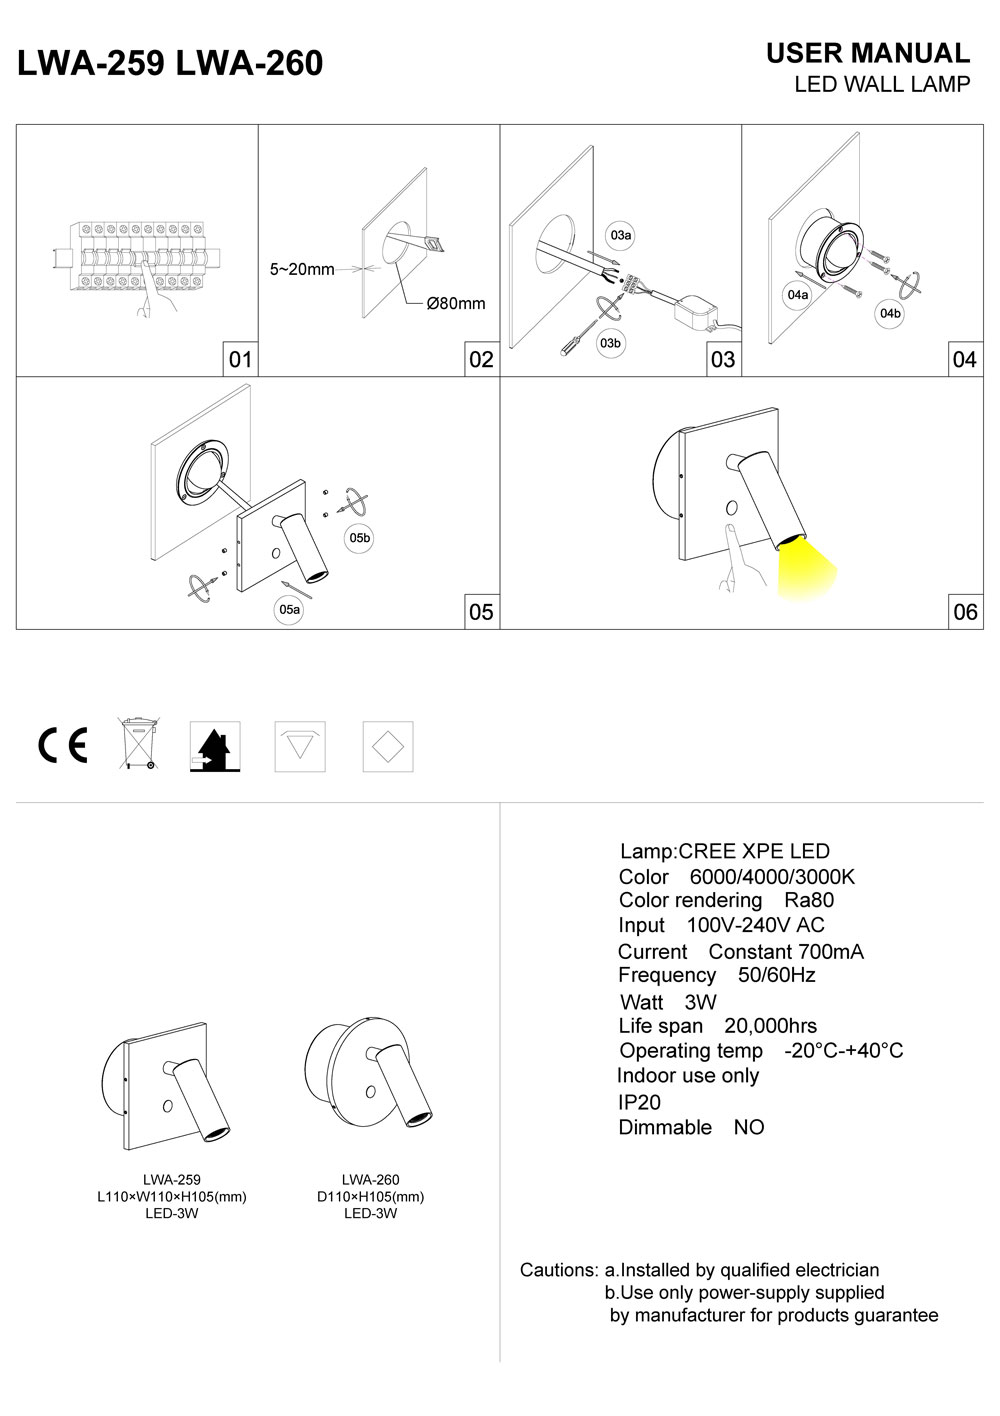 LWA260 LED reading light installation guide